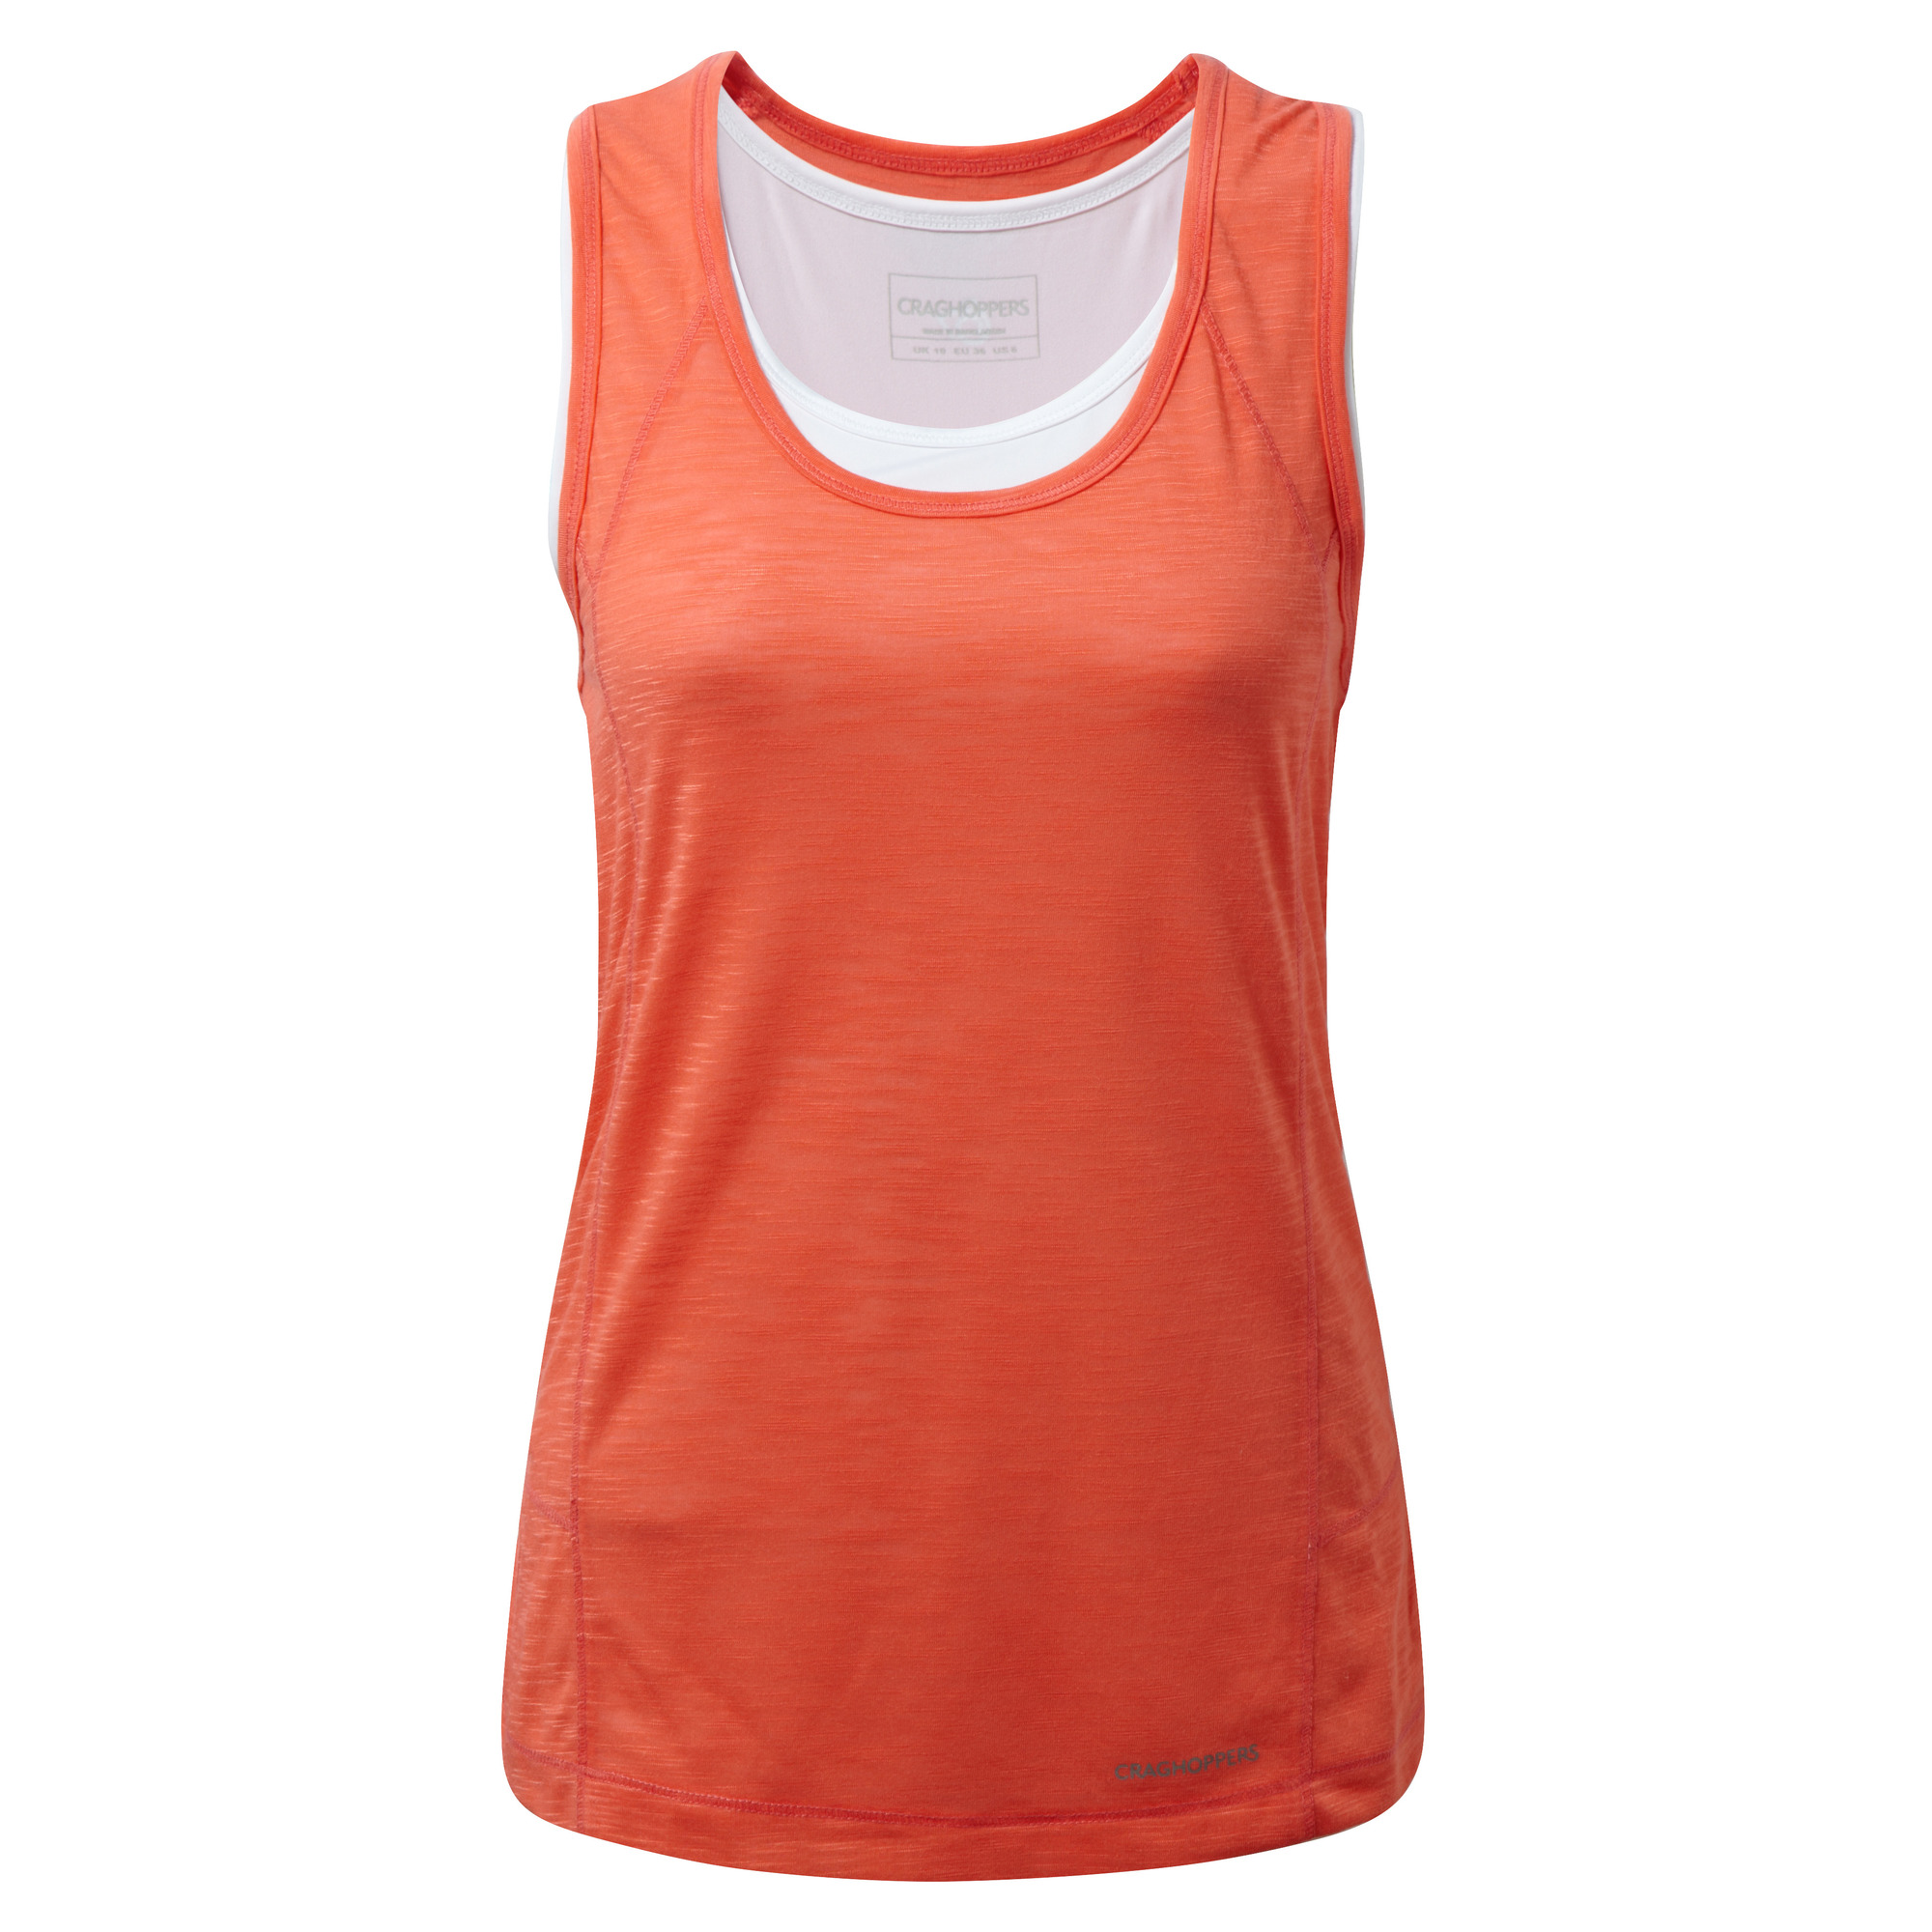 Craghoppers-Womens-Ladies-Pro-Lite-3-In-1-Sleeveless-Vest-CG309